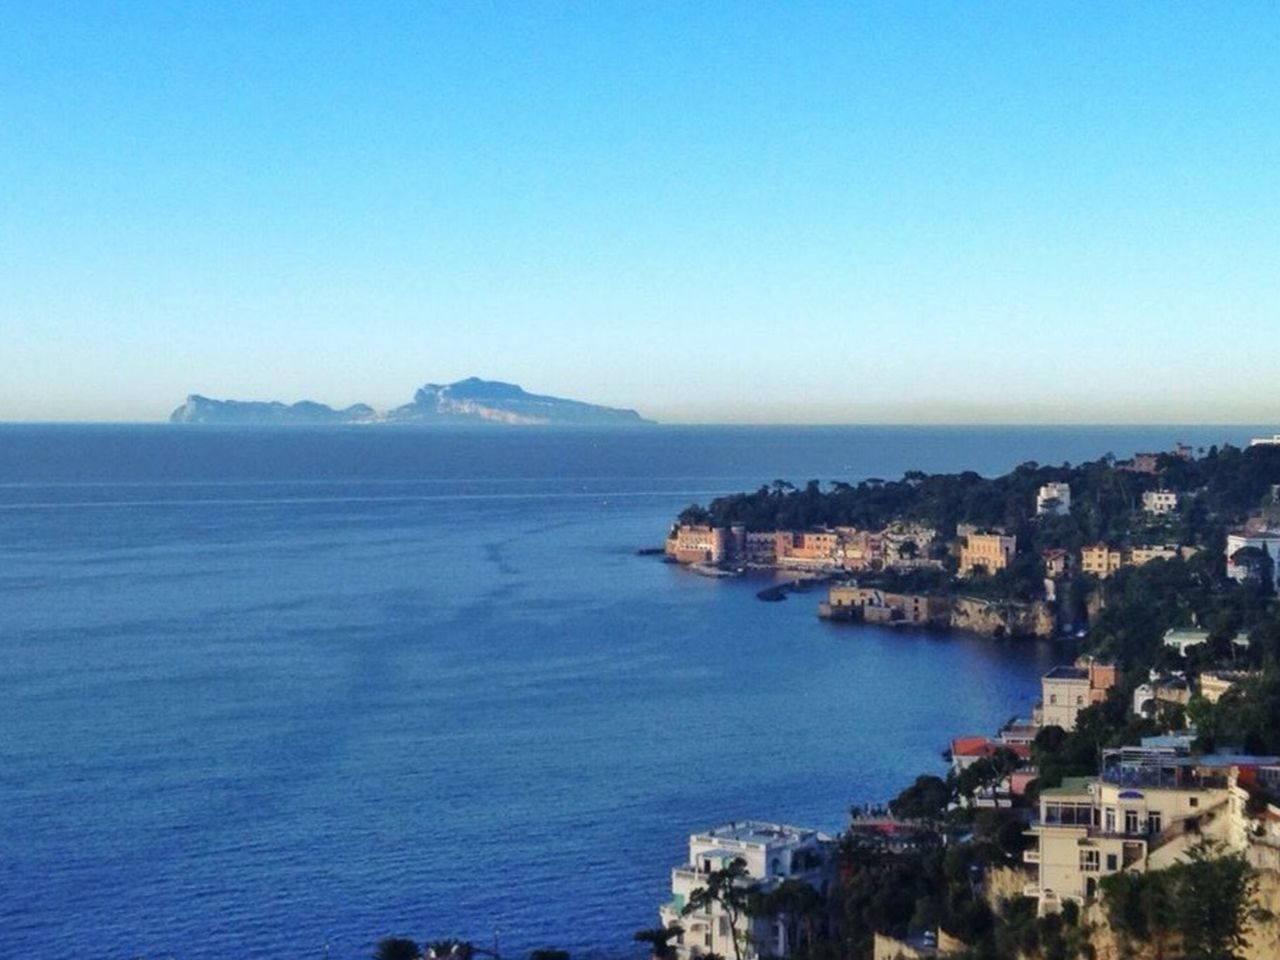 Napoli. Collina di Posillipo Sea Built Structure Architecture Building Exterior Blue Water Clear Sky Nature No People Horizon Over Water Copy Space Scenics Outdoors Day Beauty In Nature Waterfront Mountain Sky Residential Building Tranquility Napoli ❤ Napoli Naples Travel Destinations Tourism